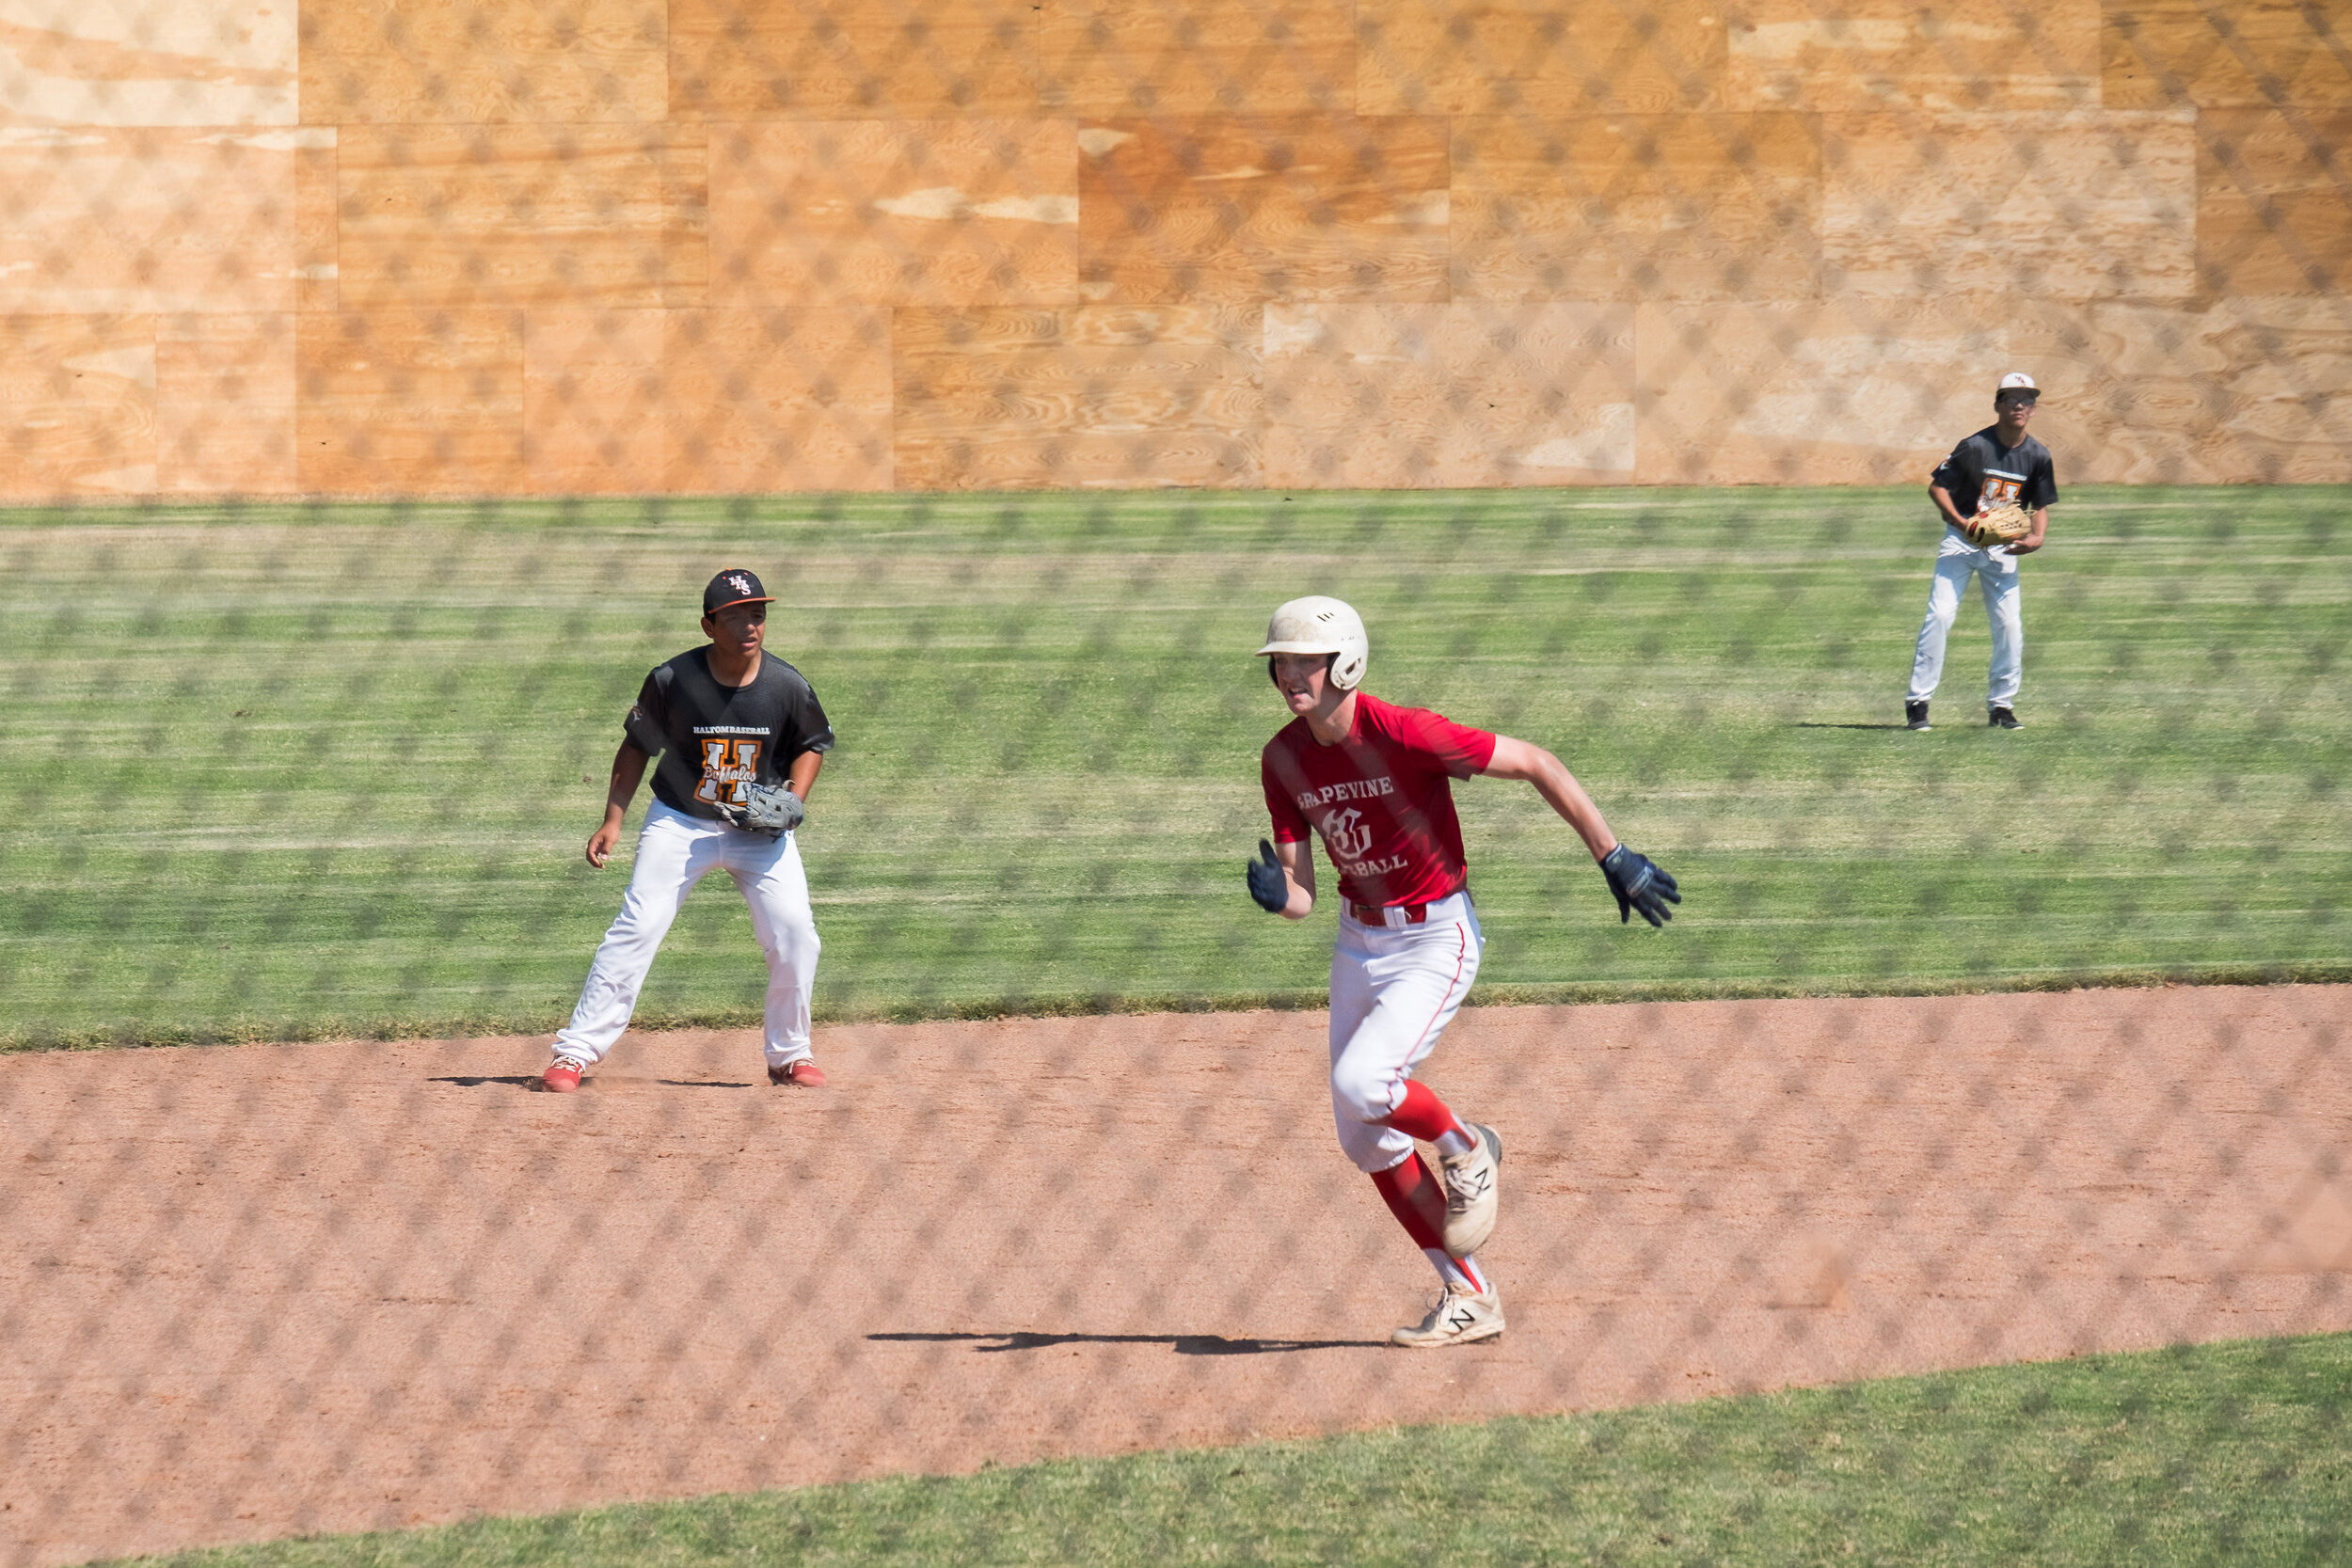 It was a 97-degree day in October, but we enjoyed the chance to watch #4 round the bases for the Grapevine team.